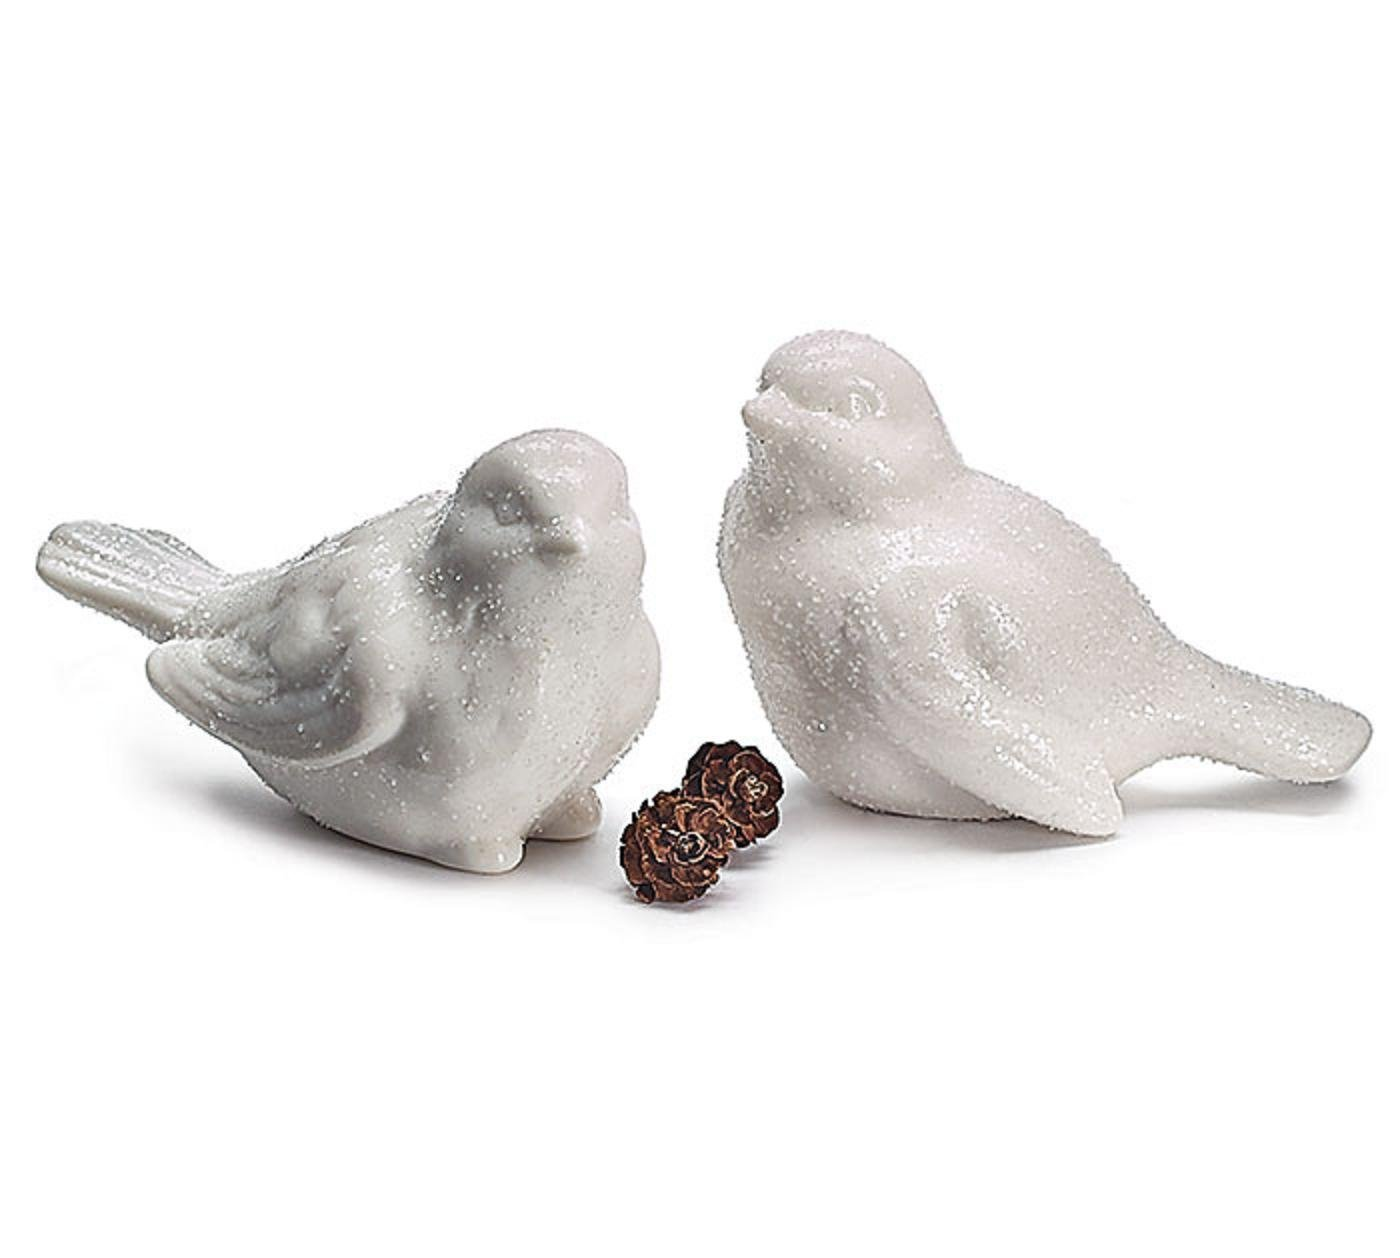 Christmas Holiday Decor Sculpted Porcelain White Bird Figurines Set Of 2 Boxed